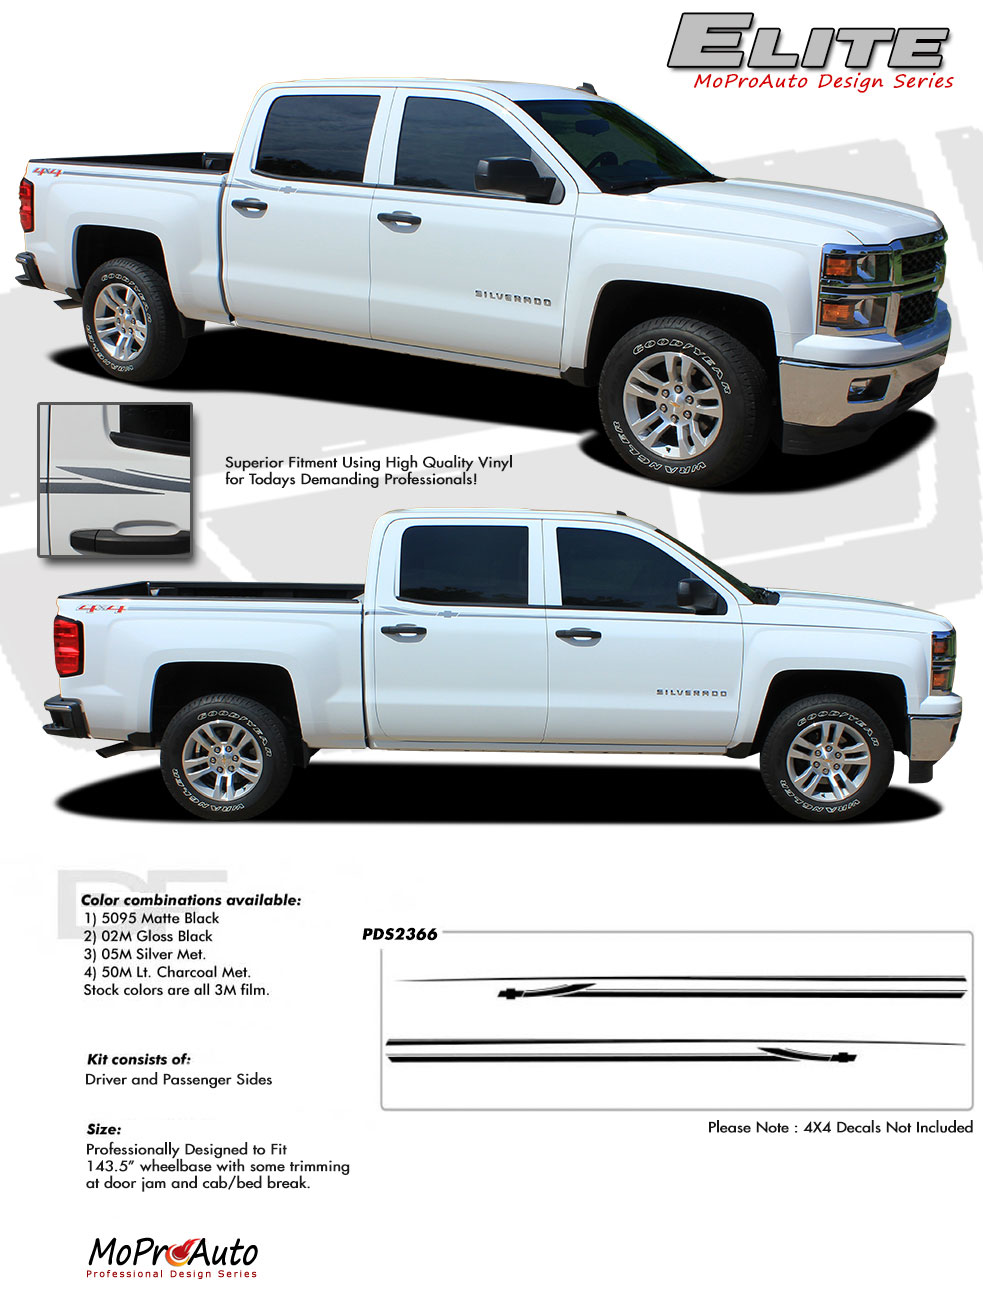 2014-2015 2016 2017 2018 Chevy Silverado  GMC Sierra - MoProAuto Pro Design Series Vinyl Graphics, Stripes and Decals Kit